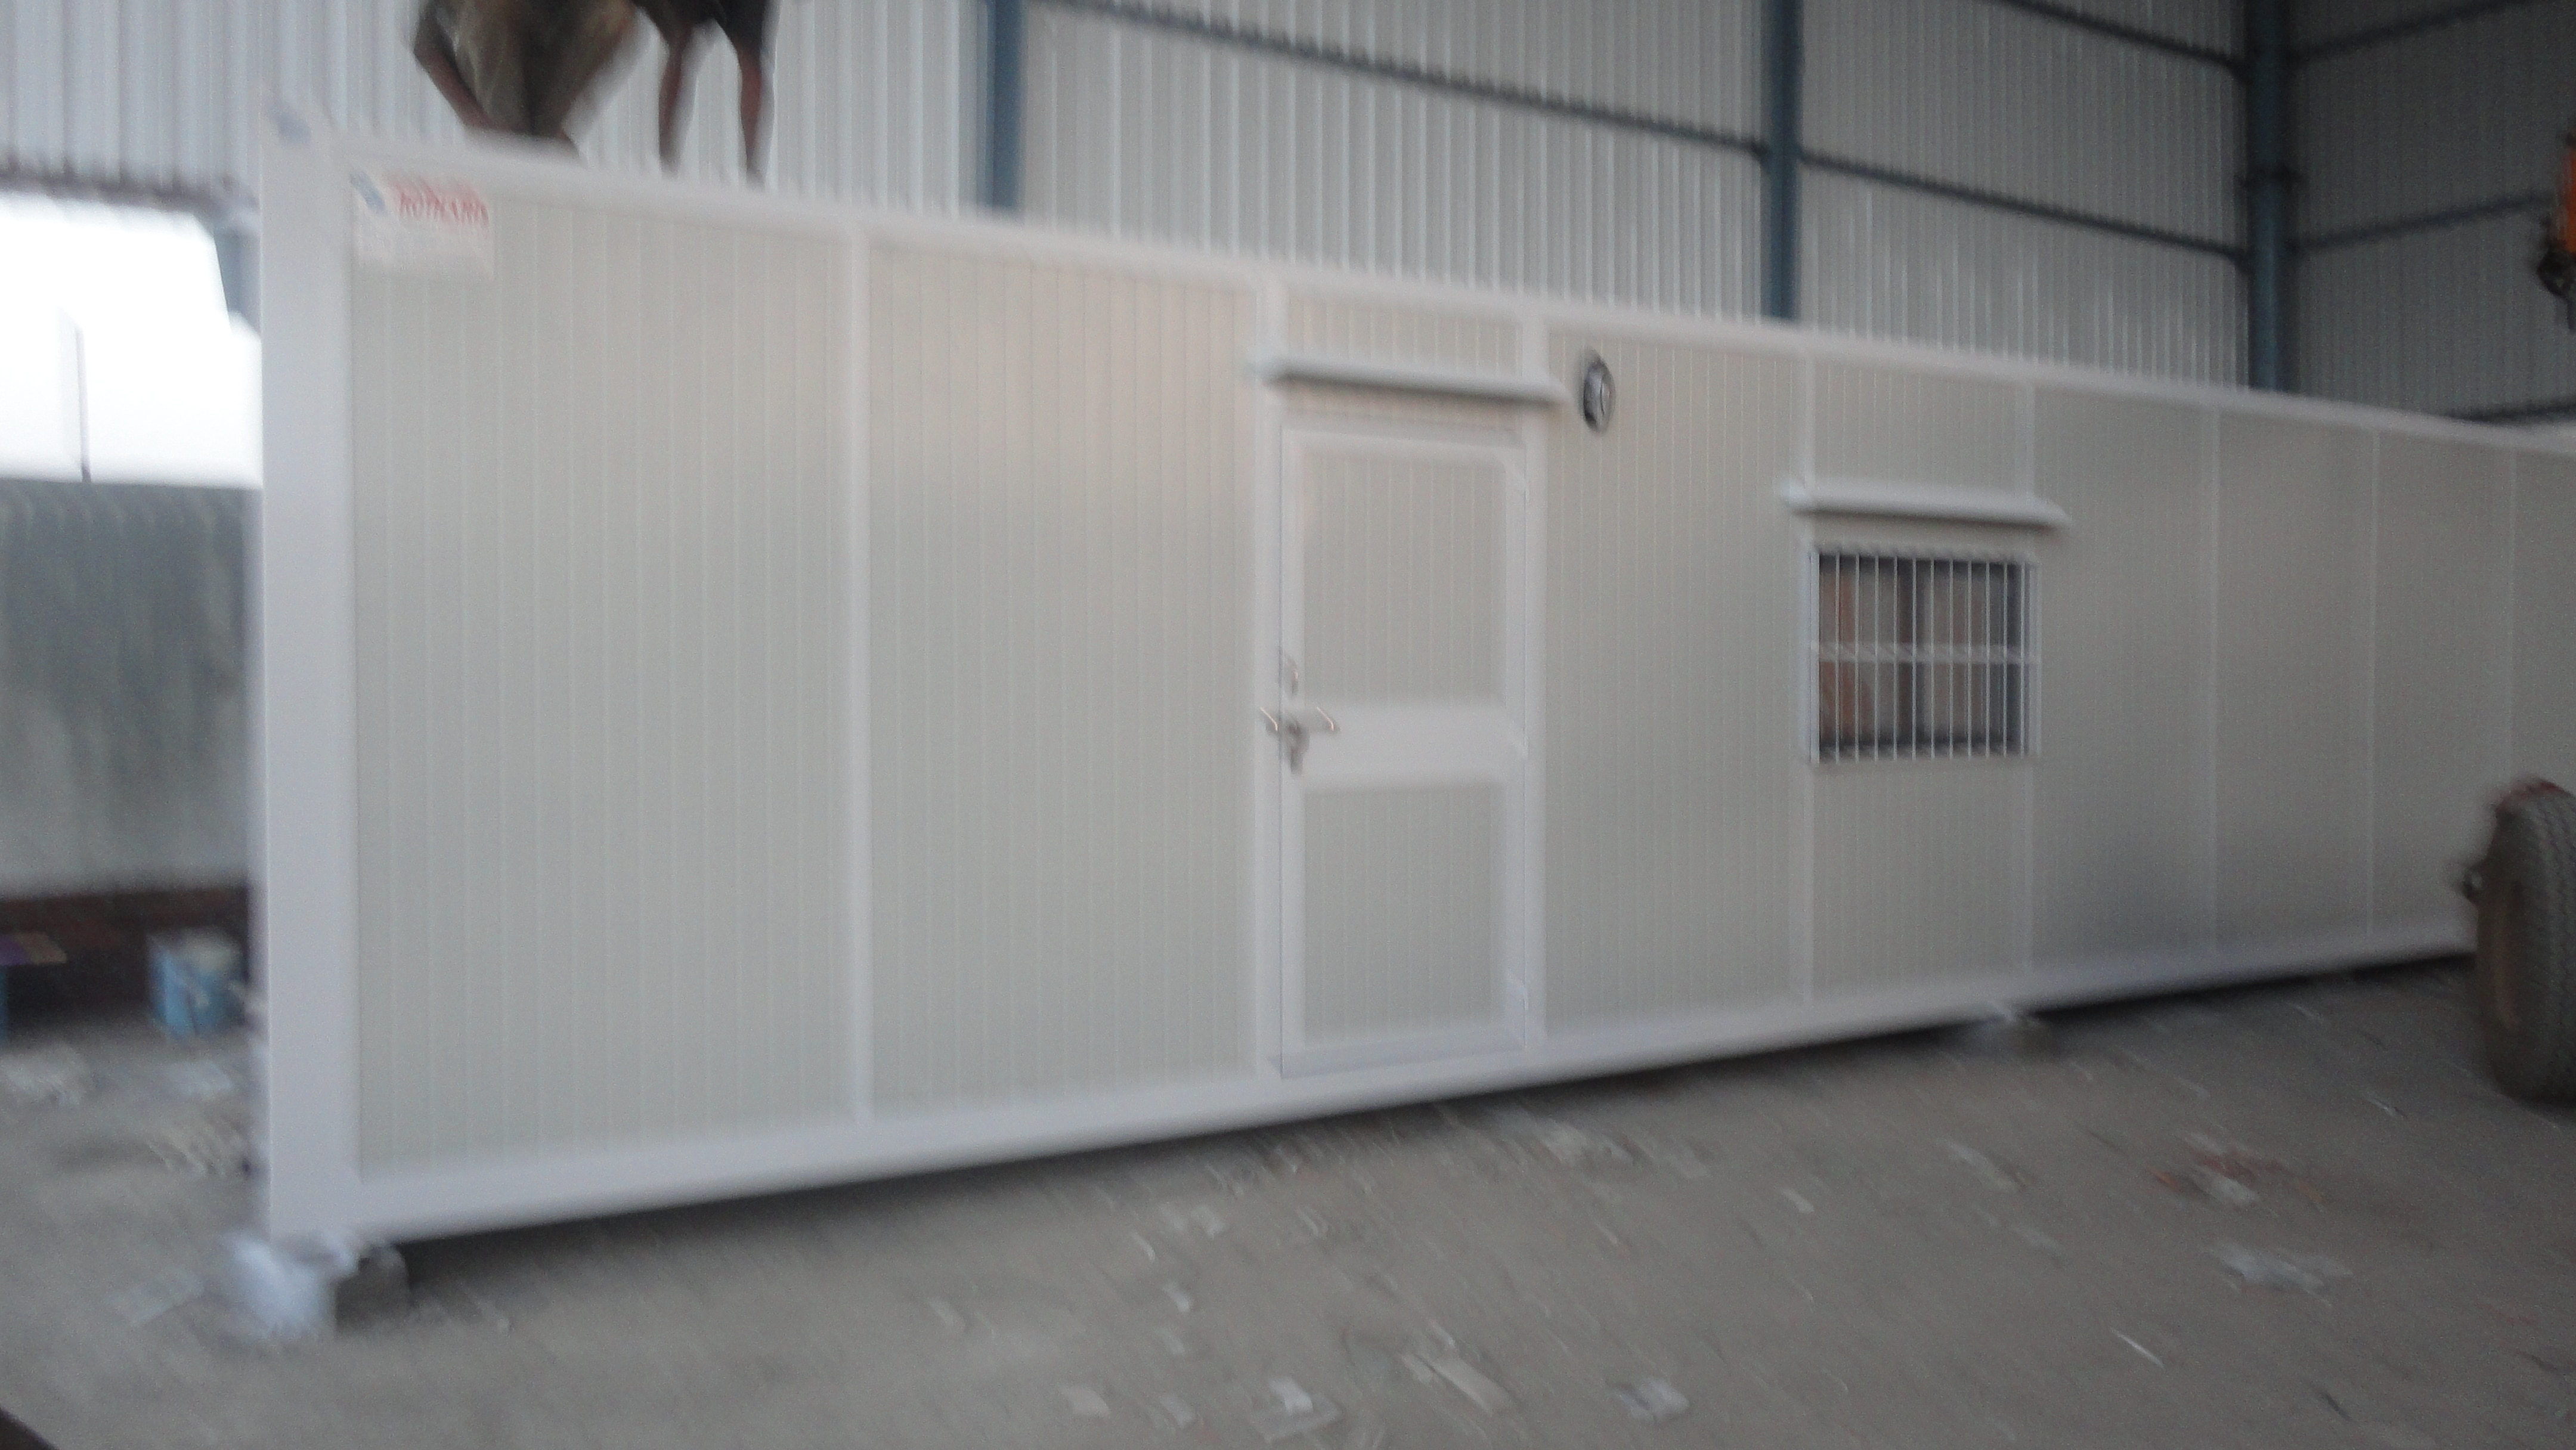 PUF Sandwich Panel CABIN   Description OF PUF SANDWICH PANEL cabin: Kotharis are highly anticipated entity instrumental in supplying and trading wide assortment of best quality PUF Sandwich Panel Cabins. We are assisted by our adept procuring agents to source the entire gamut from the accredited vendors of the market. It is used widely for building roofs and walls in several industries. Additionally, our clients can avail these from us in various specifications as per their needs.  Features of PUF Sandwich PANEL cabin:  •Commendable structure •Rugged construction •Precise dimensions  Benefits of PUF Sandwich PANEL cabin:  •These insulated panels gives long lasting value with controlled quality, precision & velocity of construction and caters for better functionality and application.